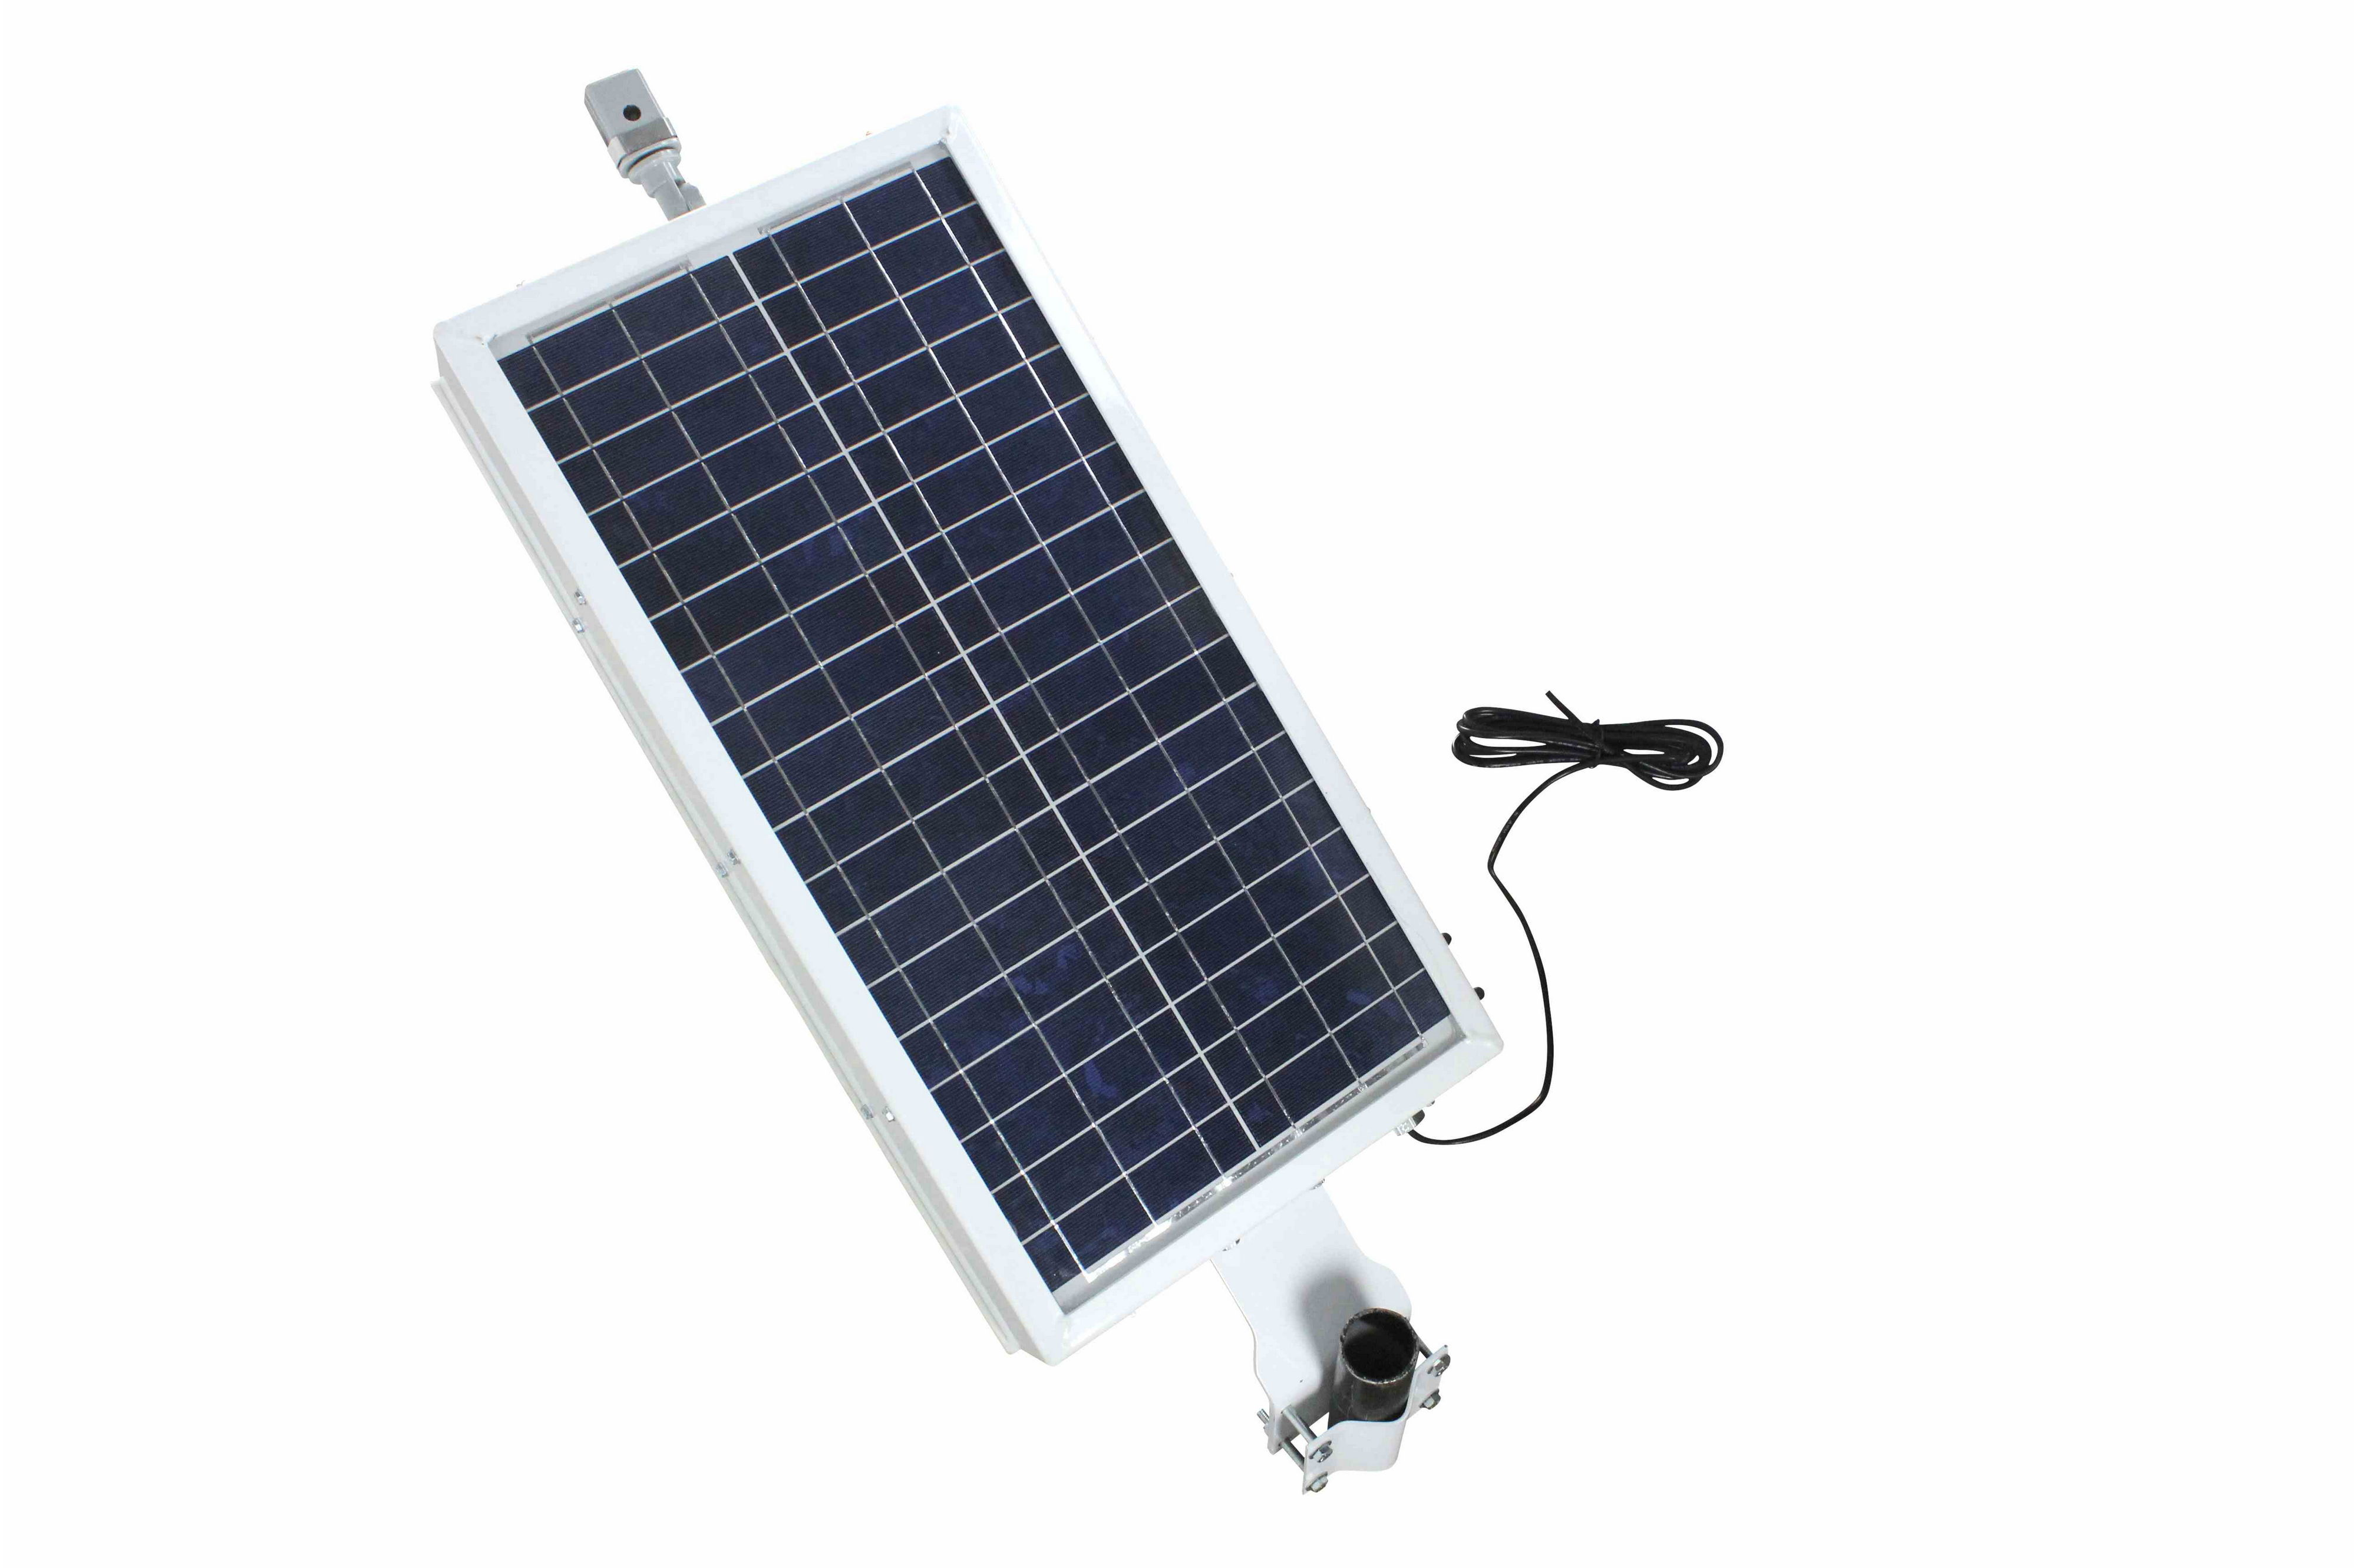 Solar Panel Powers Lights Cameras Remote Equipment 10 16 2 Charger Further Off Grid Power System Also Street Light Circuit Hi Res Image Powered Led Beacon